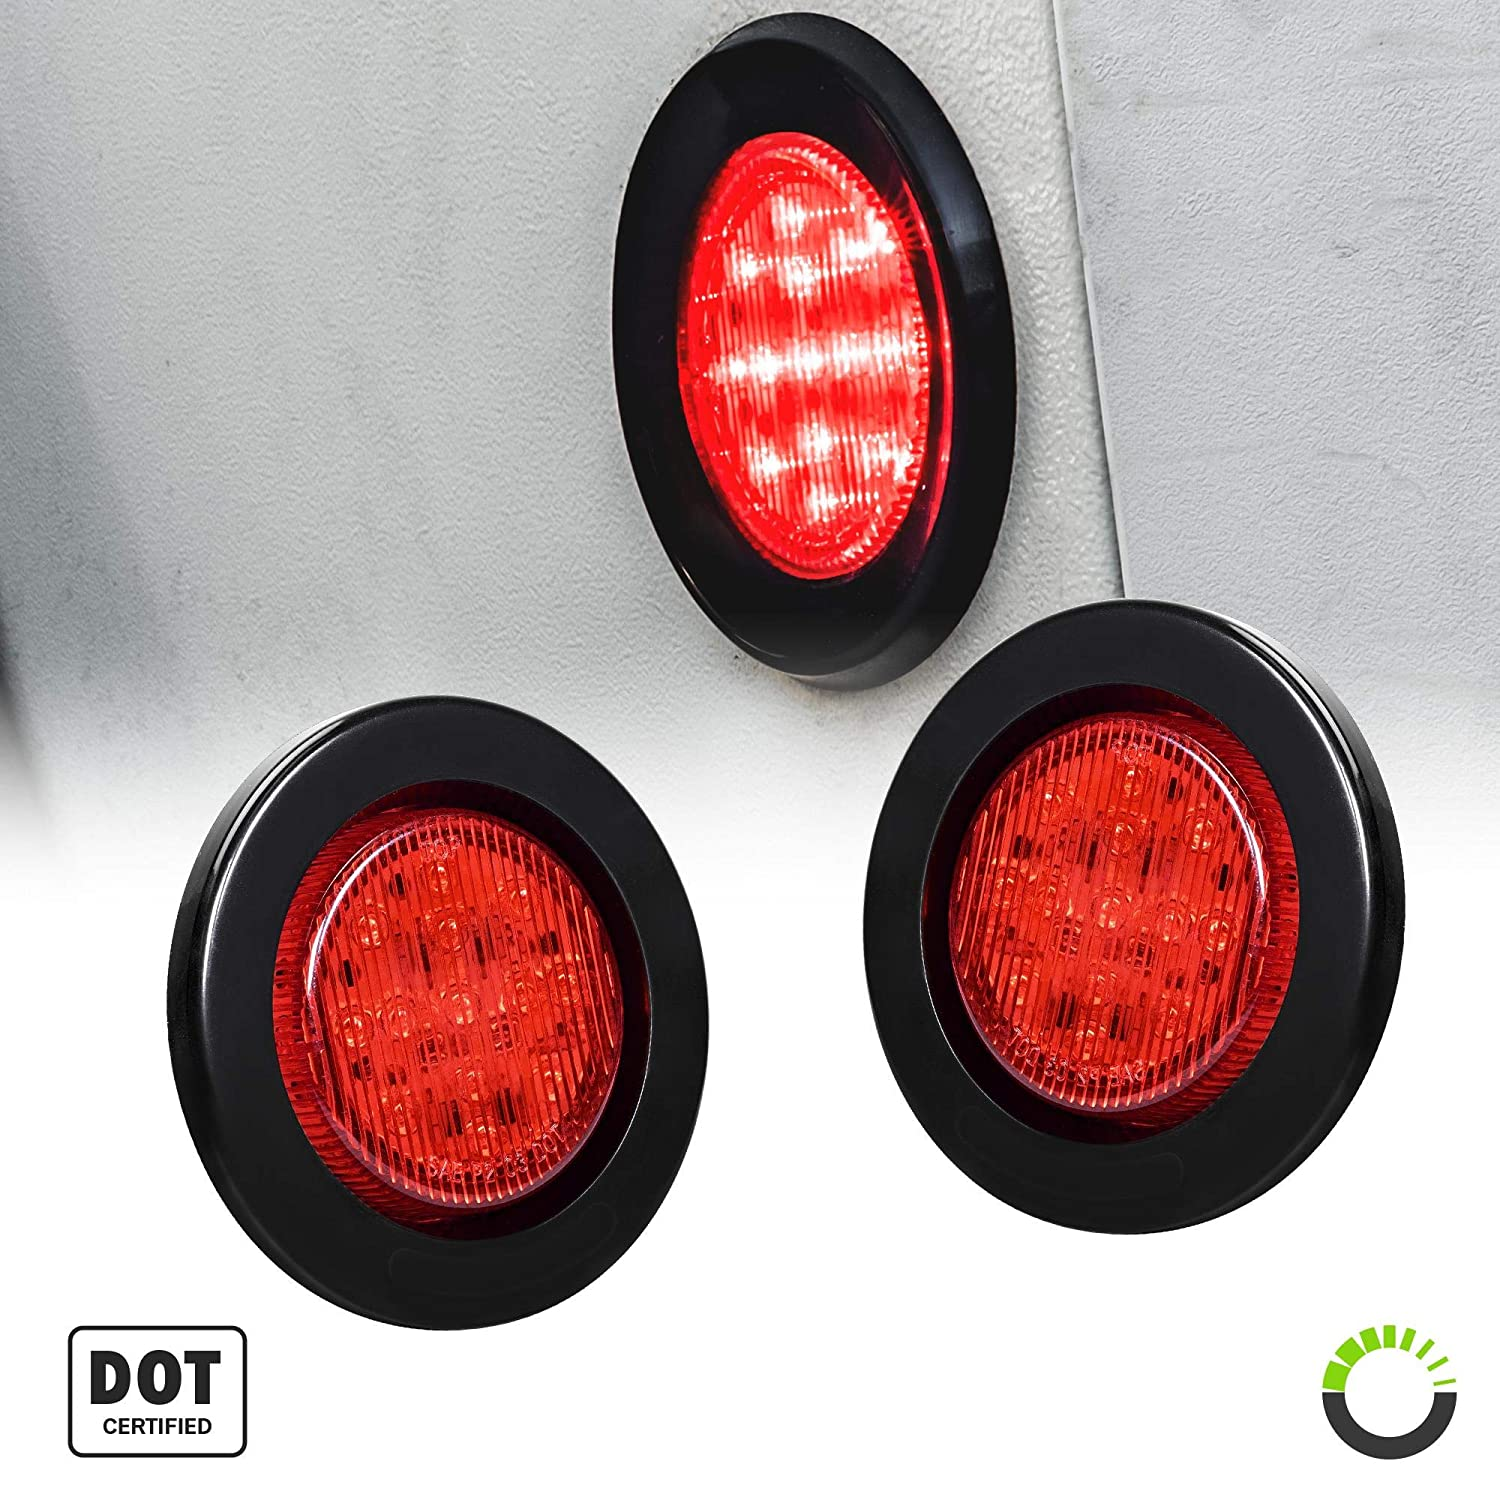 2 Year Warranty 8PC 2.5 Round 10 LED Light D.O.T. Certified Side Marker Light for Trucks and Trailers Polycarbonate Reflector 2 in 1 Reflector 13 LEDs Amber